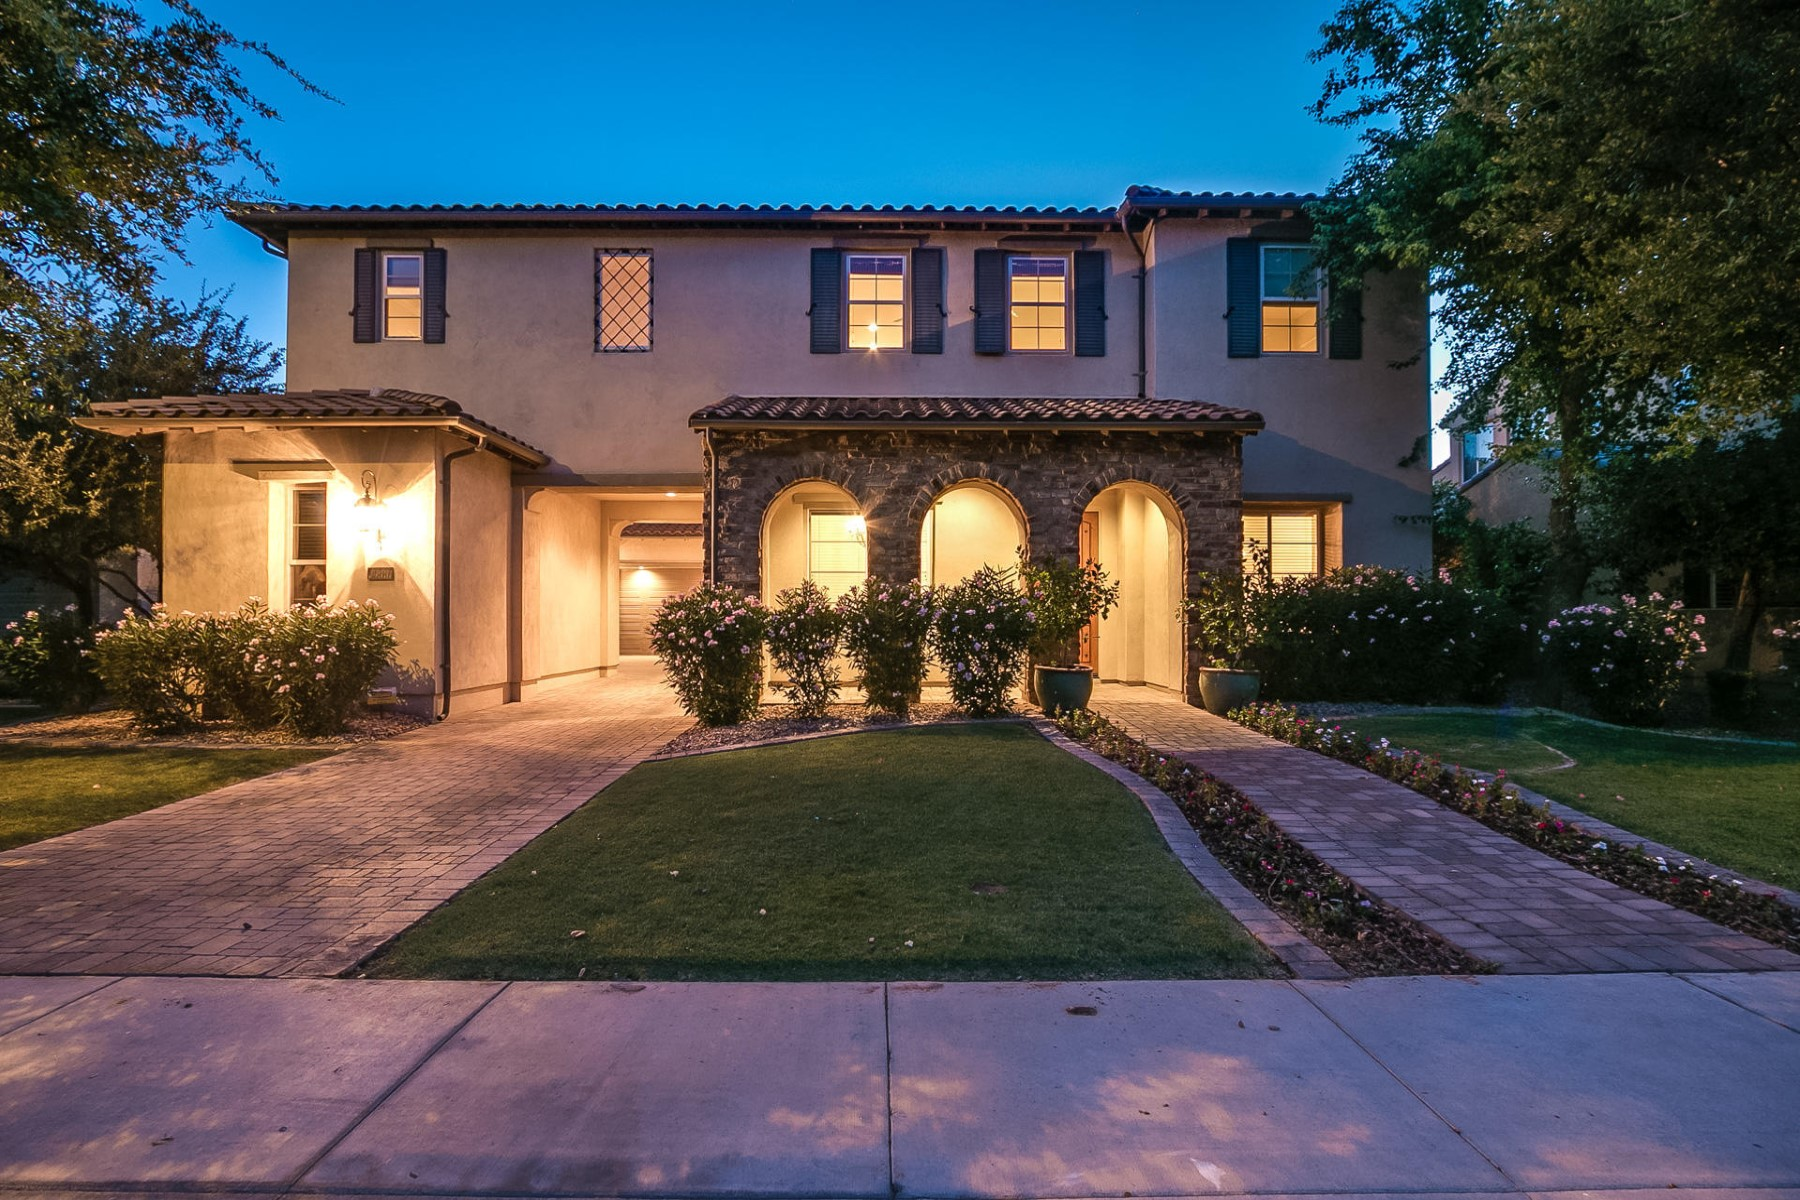 Single Family Home for Sale at Ocotillo waterfront residence in Windward Chandler 4360 S Rosemary Pl Chandler, Arizona 85248 United States